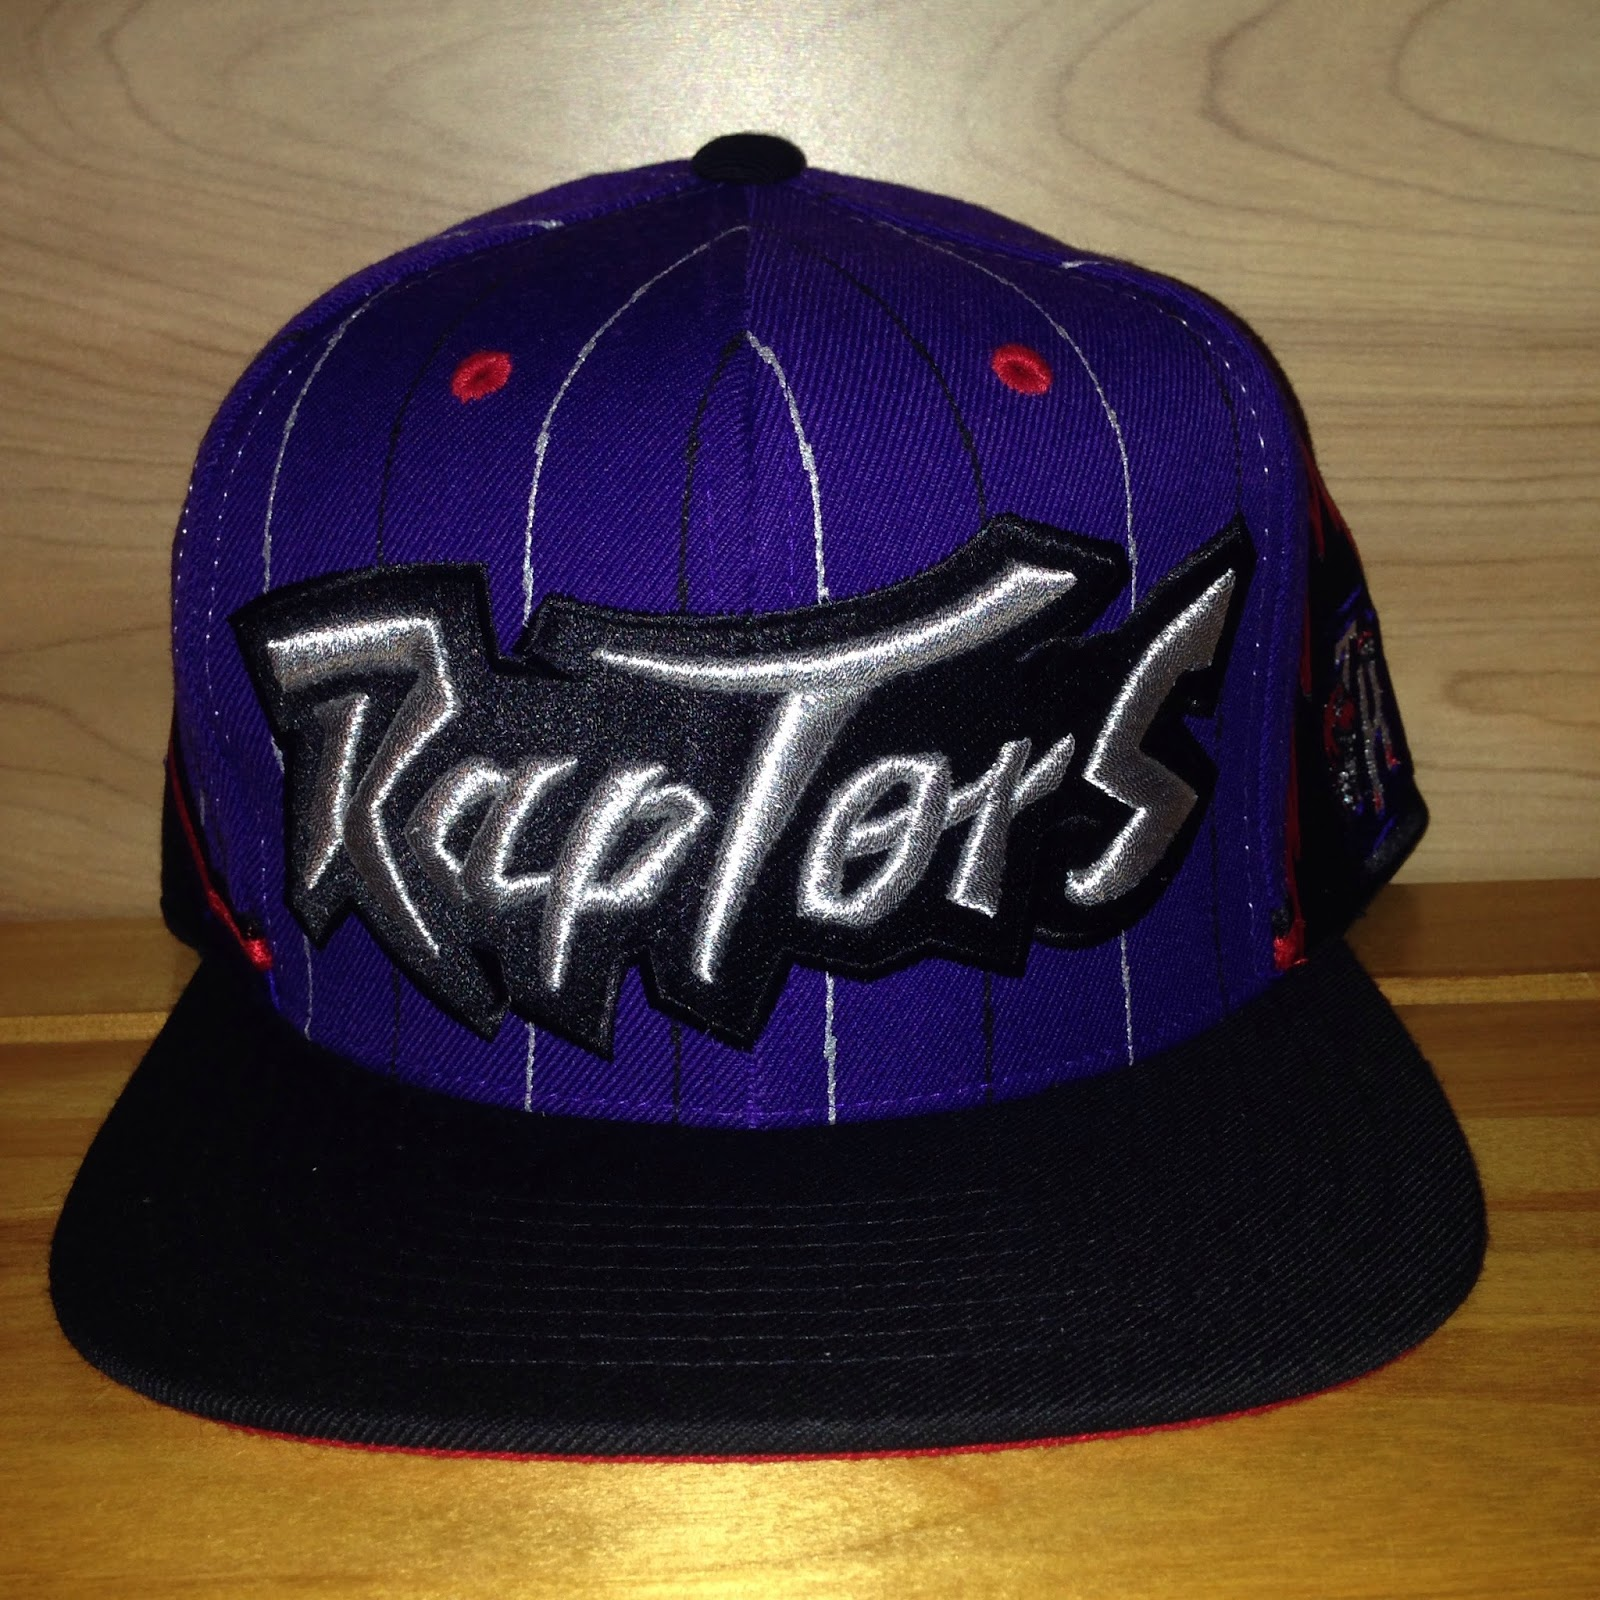 the best attitude 790bc dde99 Just picked up this Mitchell   Ness Toronto Raptors snapback at a department  store the other night. Something I wouldn t normally wear, but the price  was ...